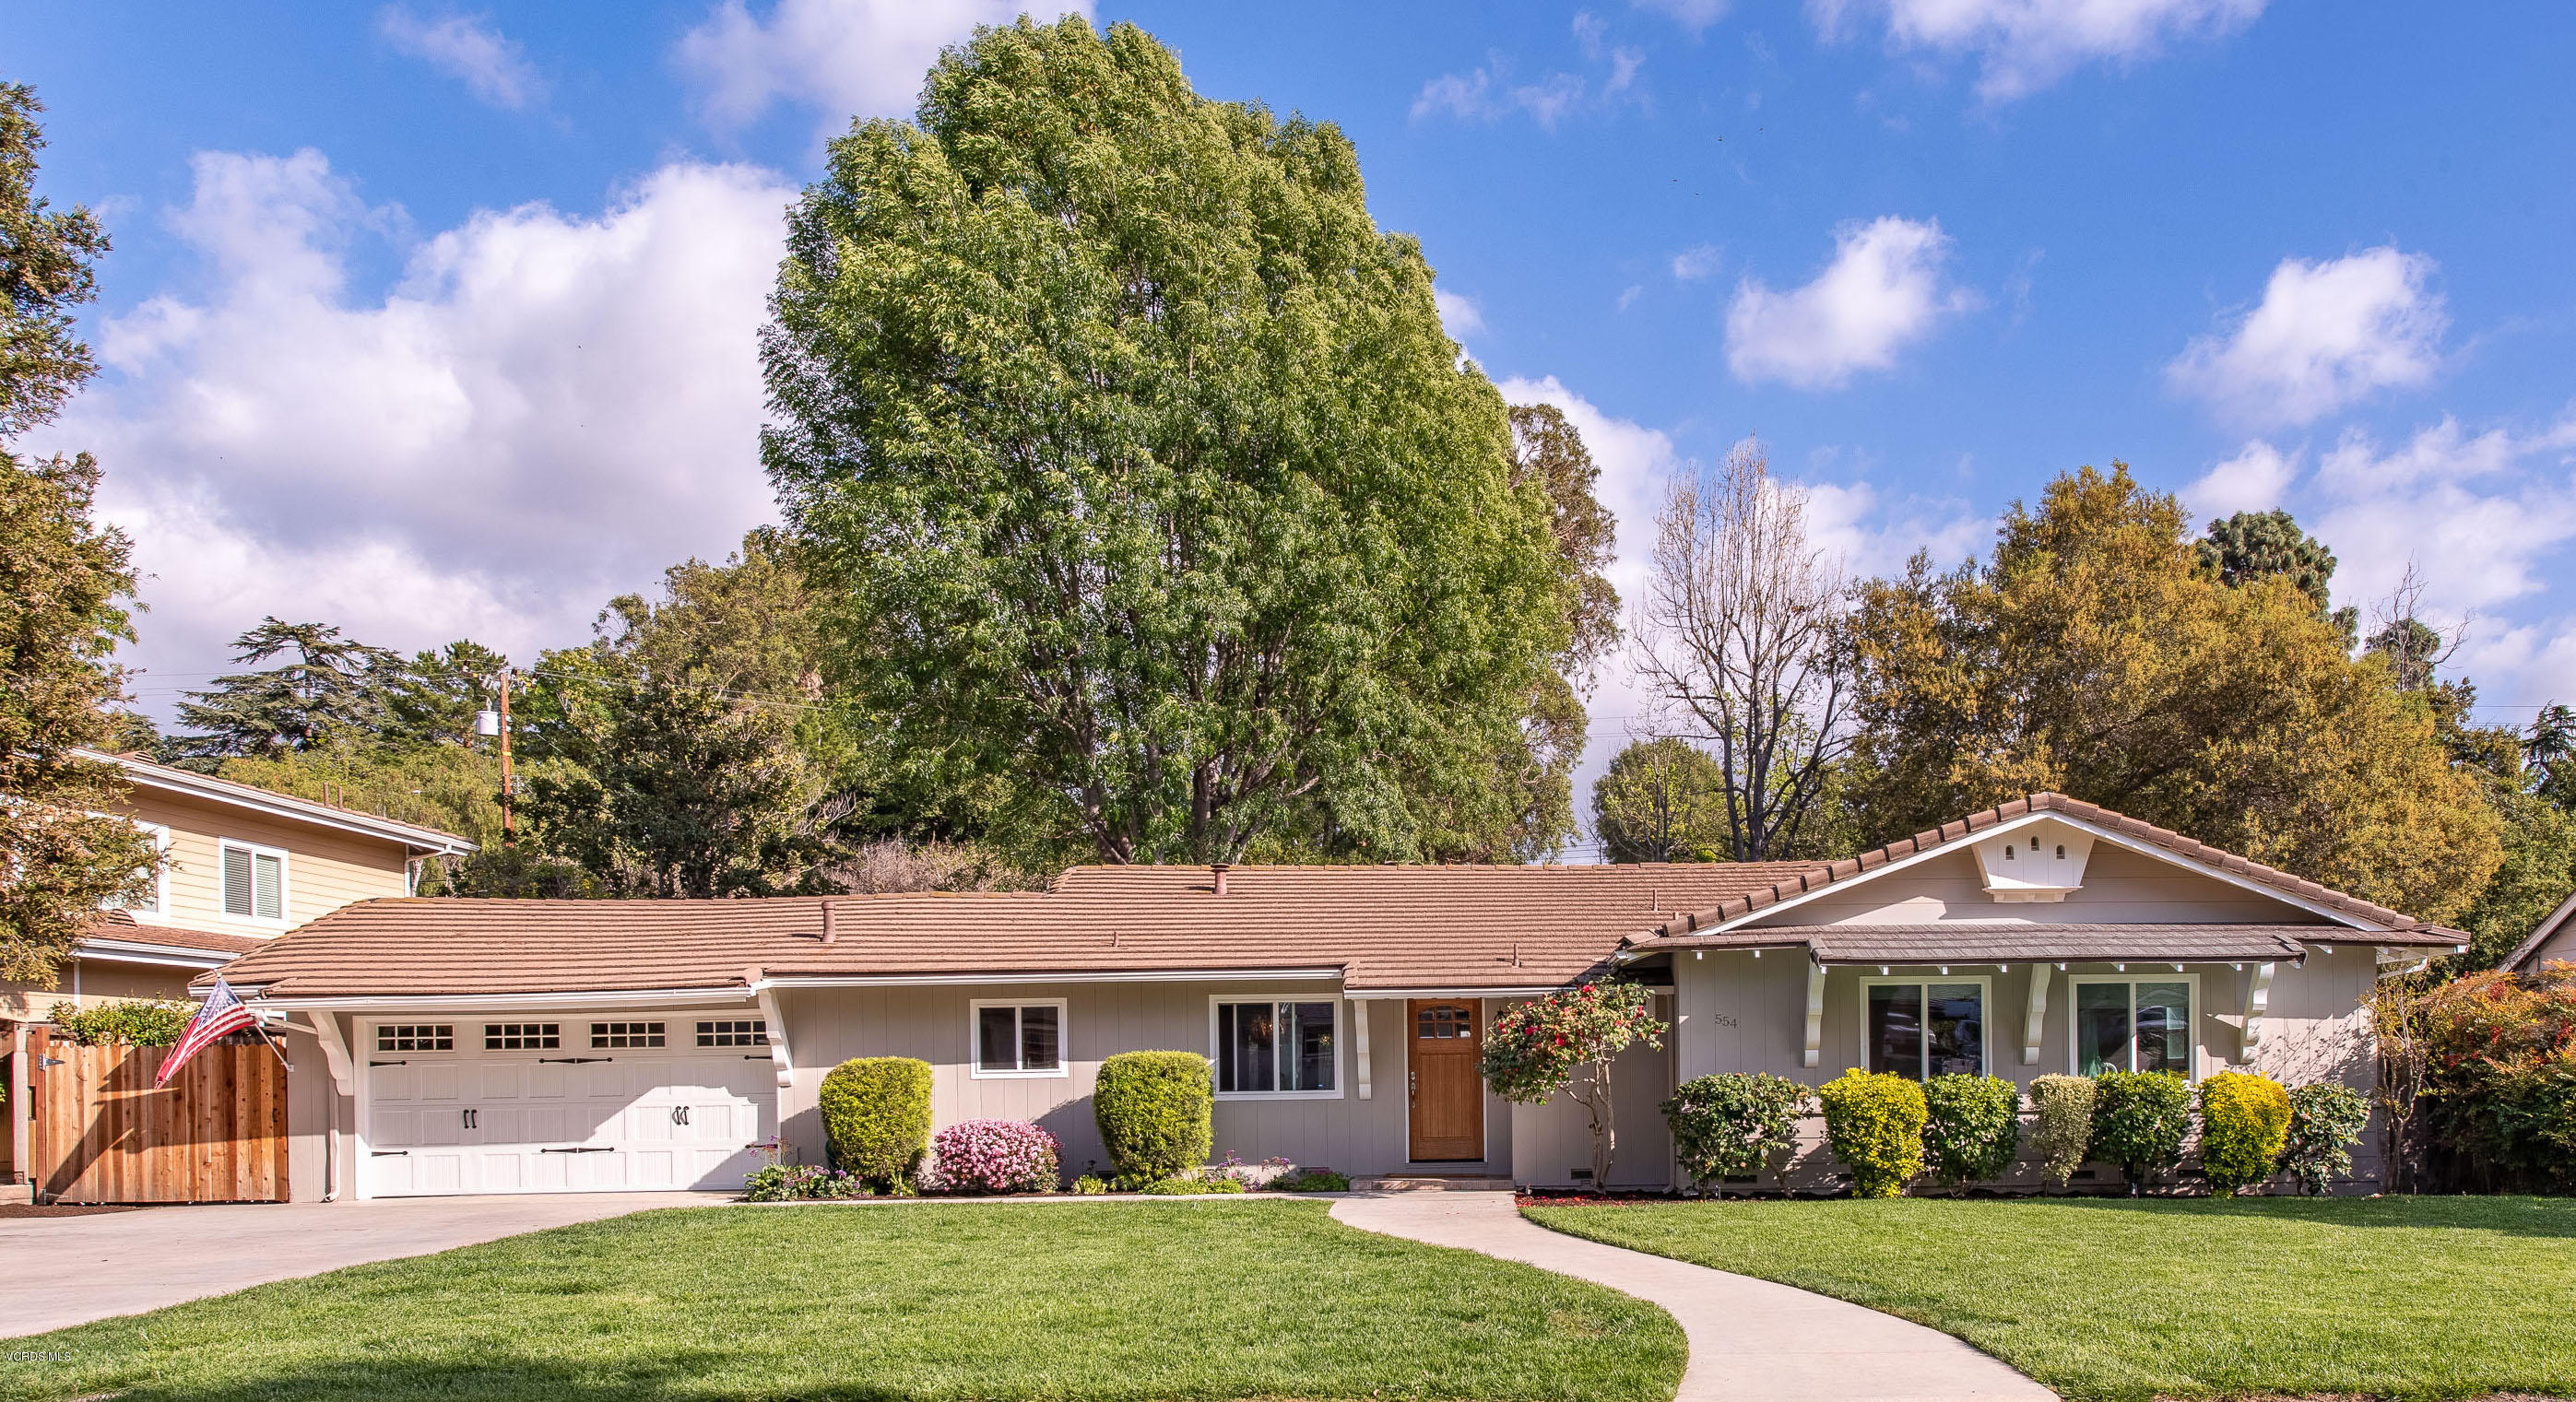 Photo of 554 Rosario Drive, Thousand Oaks, CA 91362